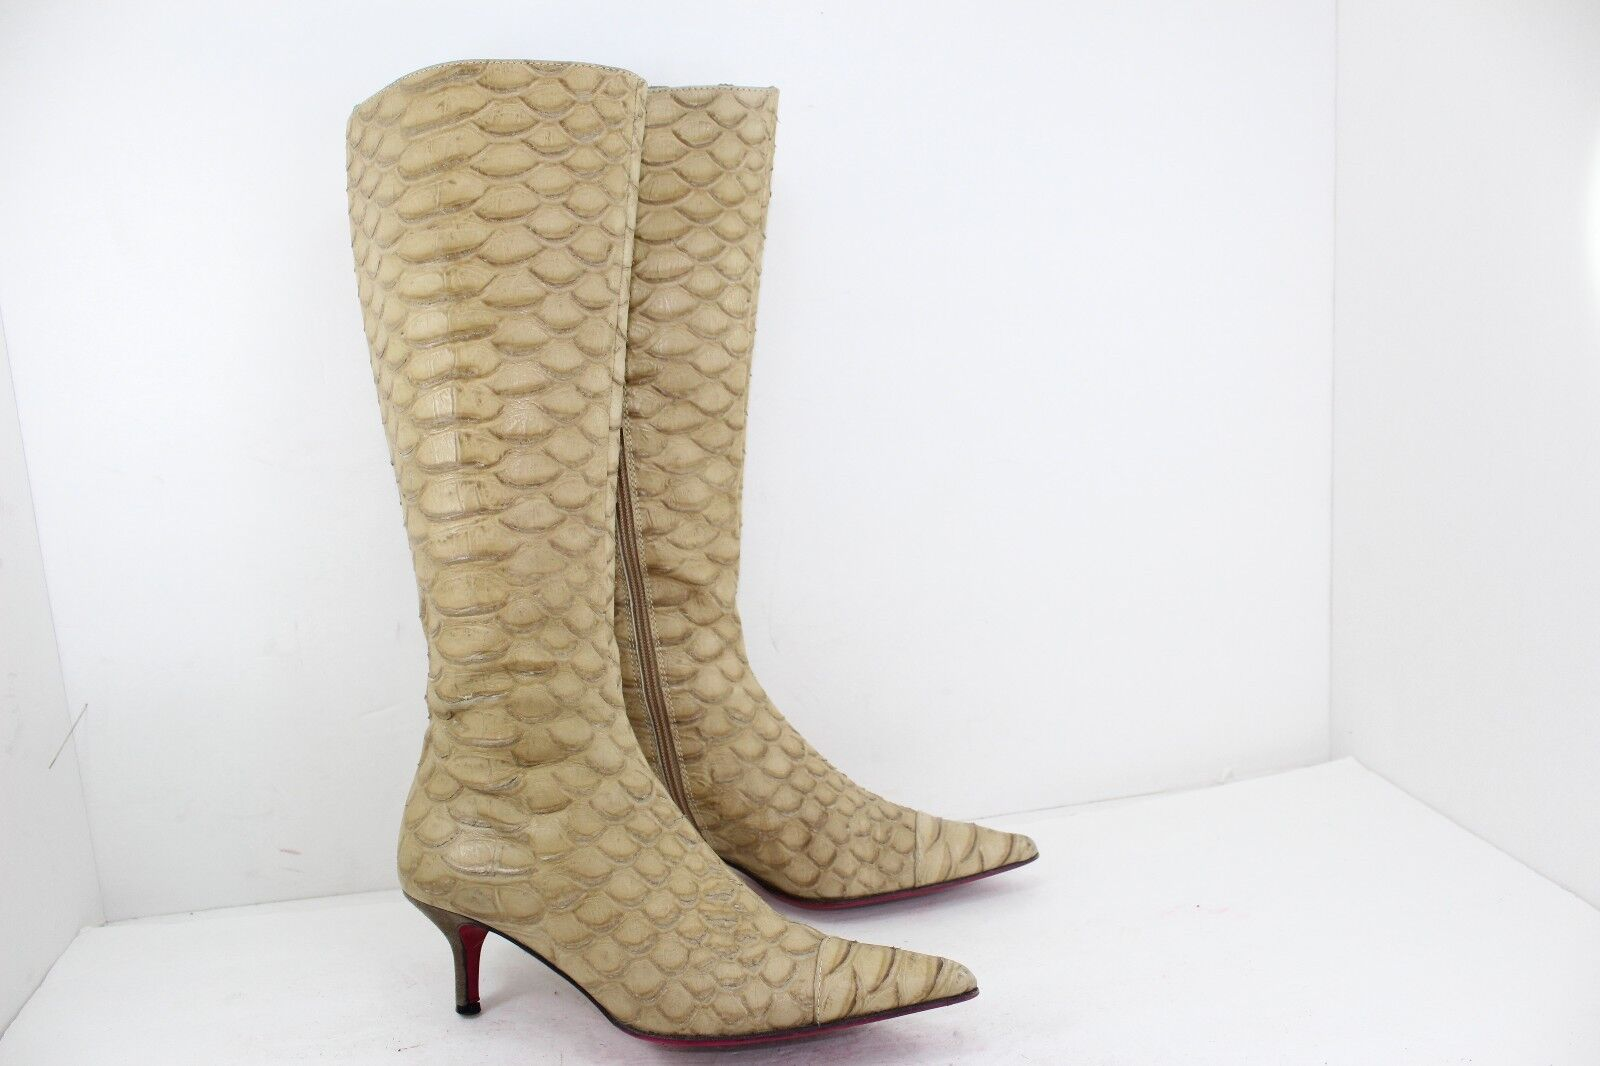 EMANUEL UNGARO LEONORA BEIGE BOOTS MADE IN IN ITALY SZ 7.5 M IN IN GREAT CONDITION 8ce5e9